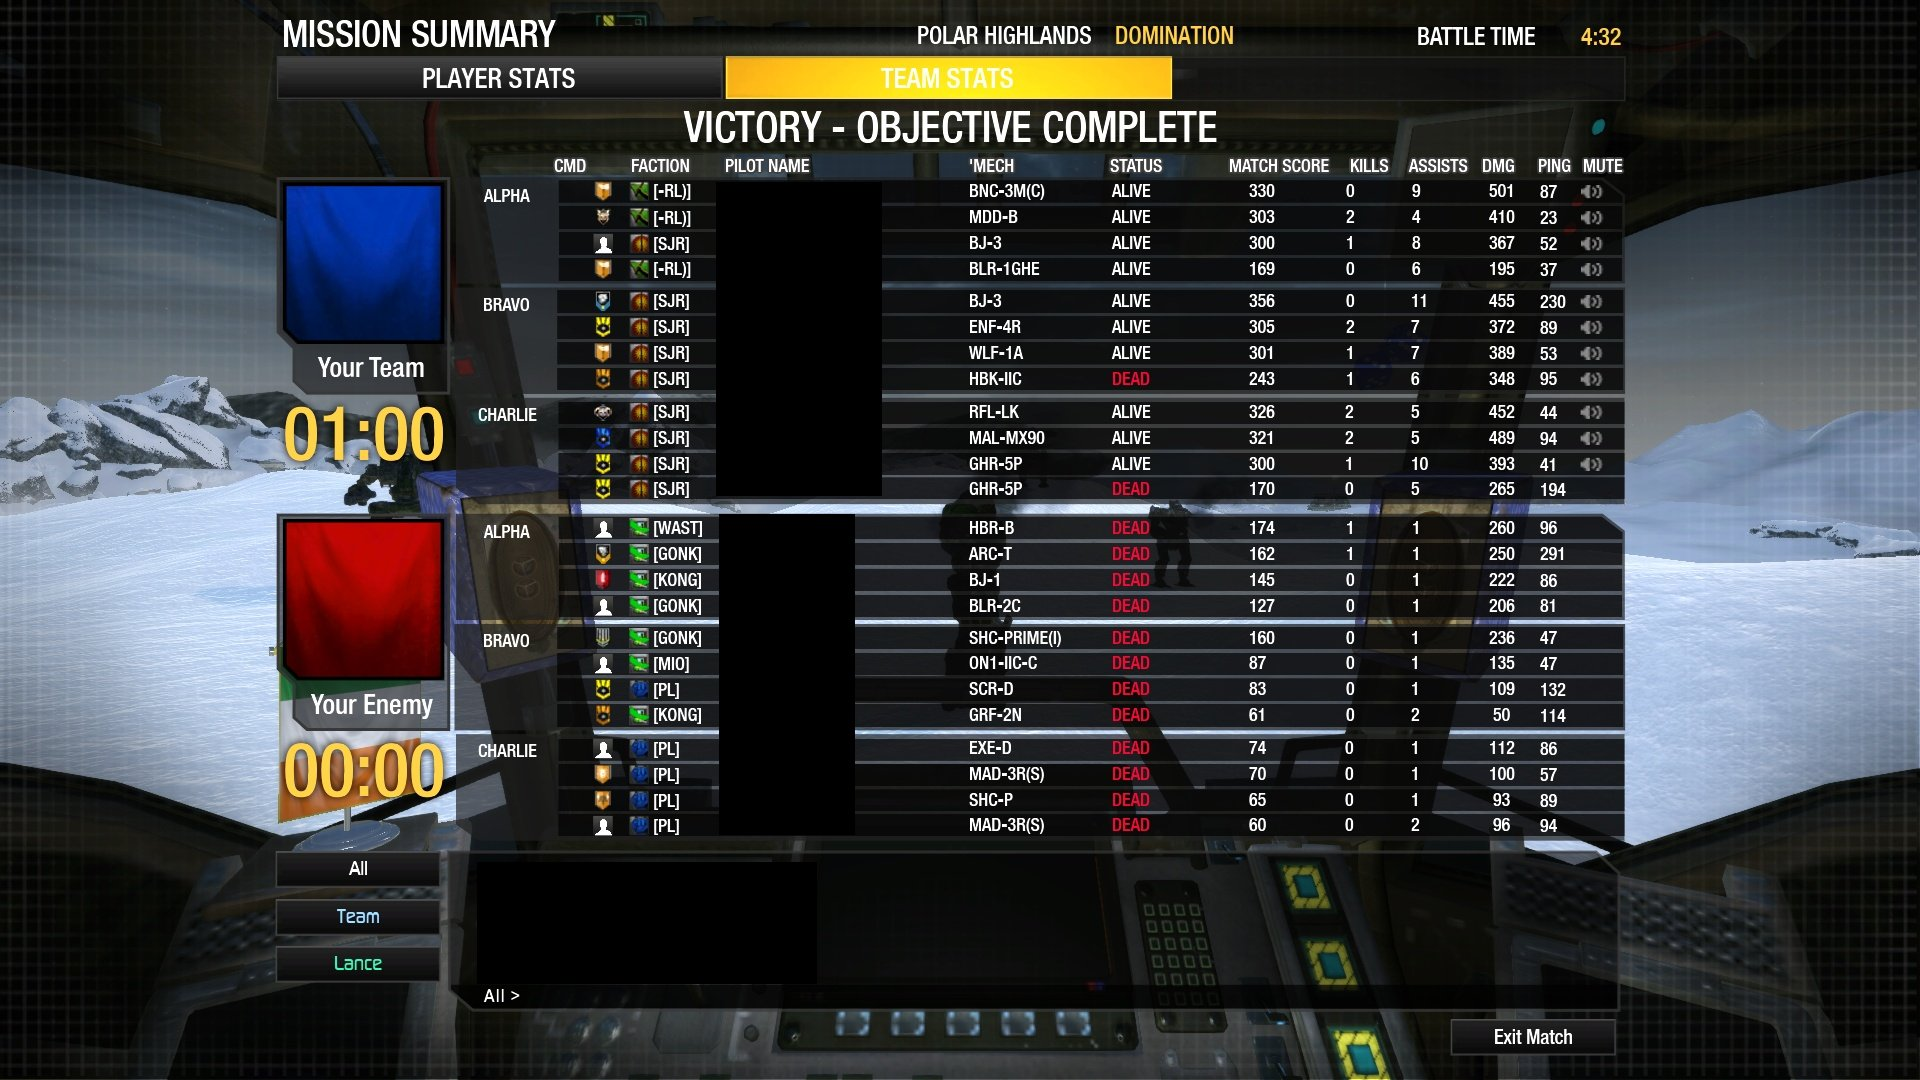 Far cry 4 demo matchmaking